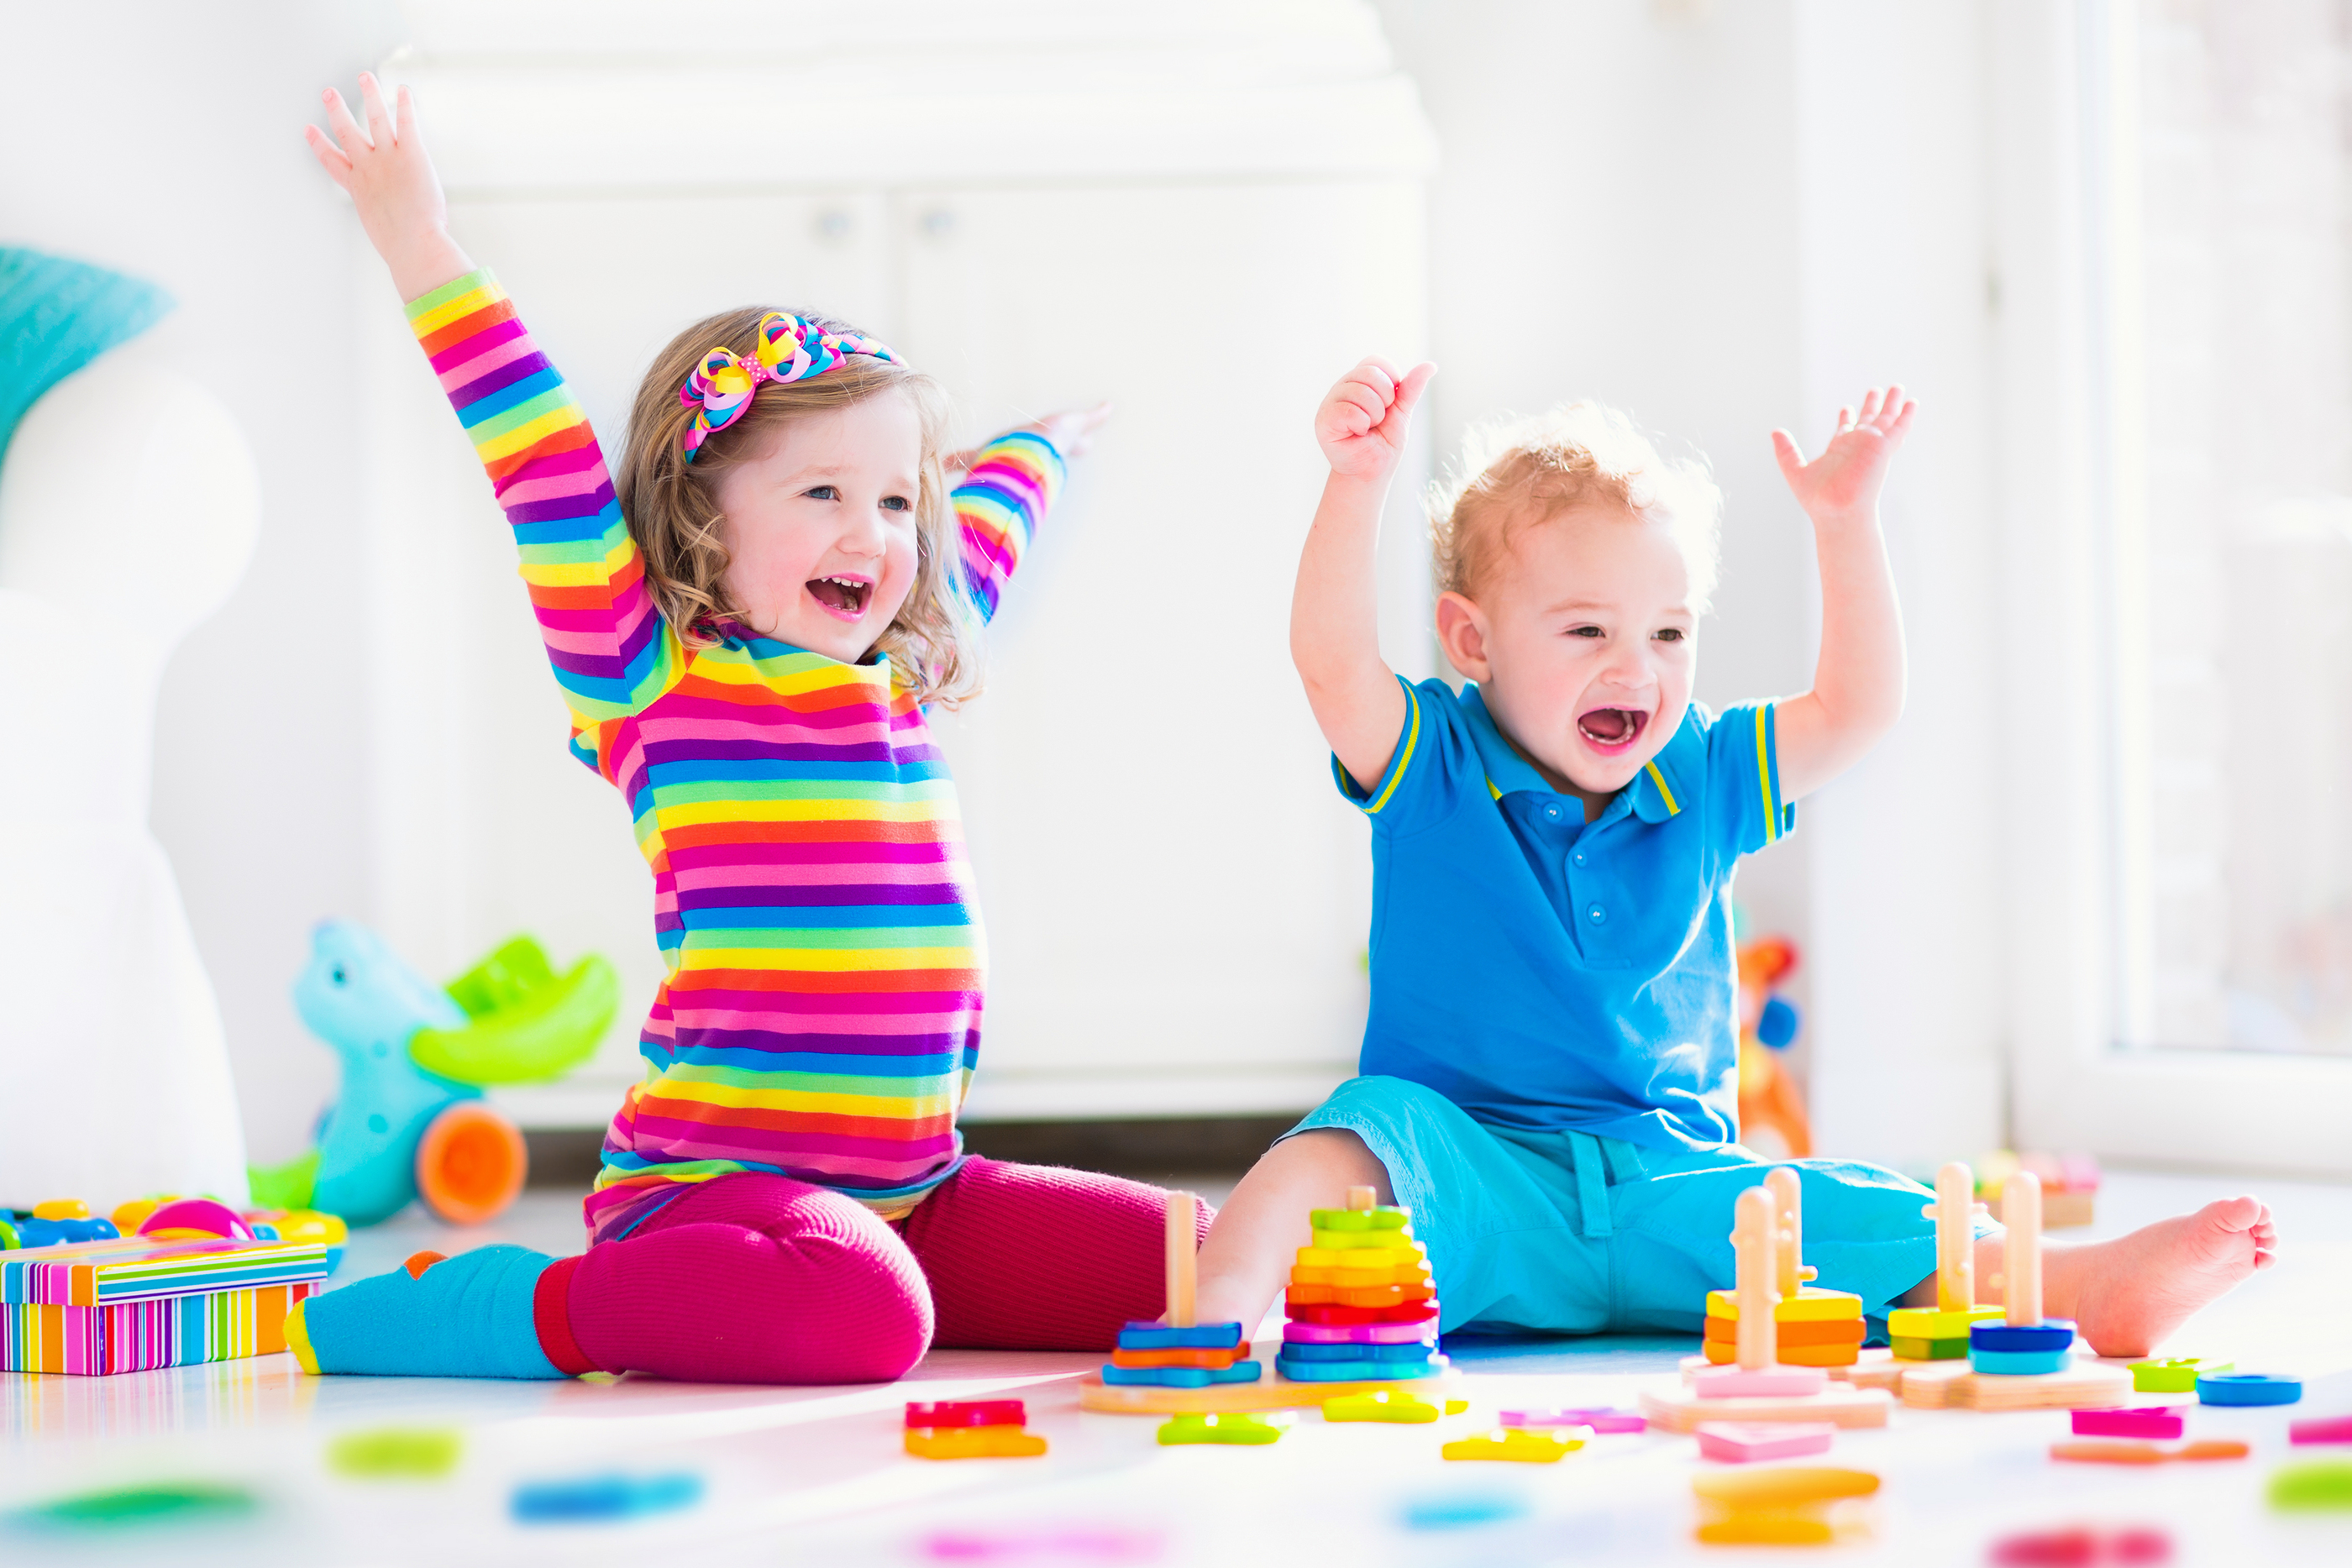 Children Playing With Wooden Toys.jpg